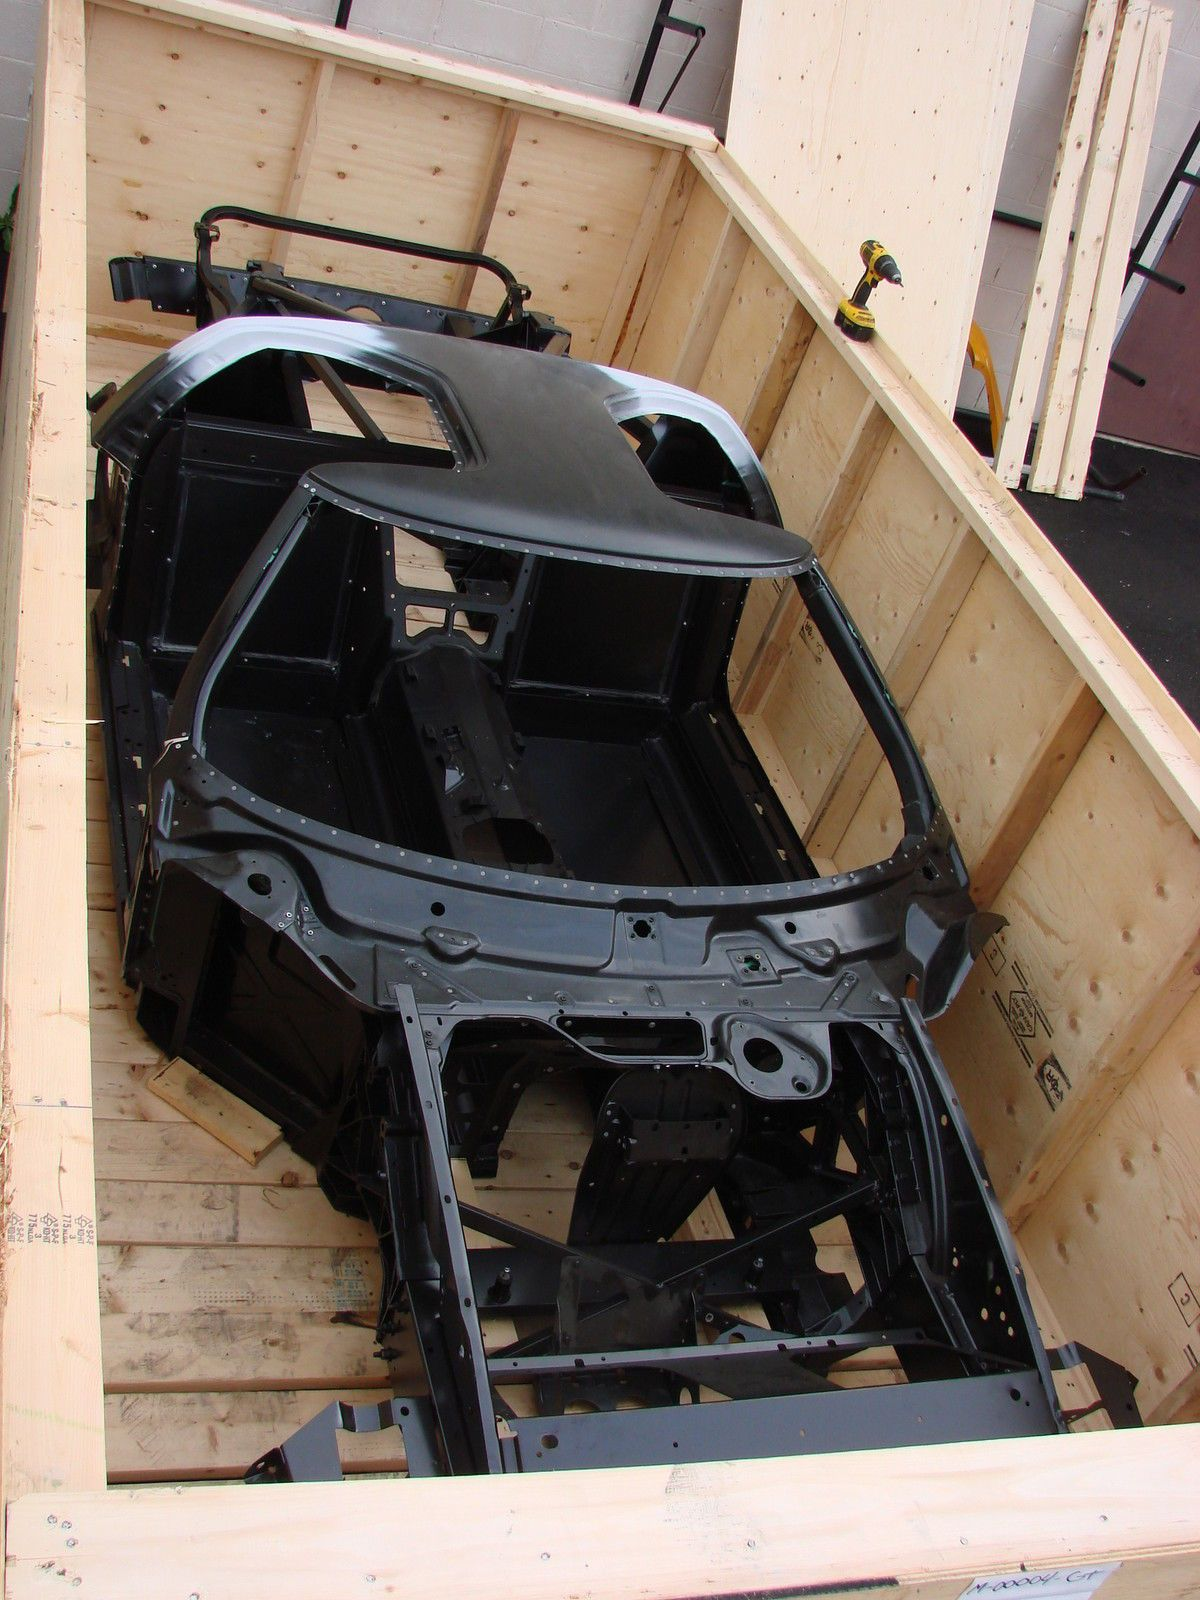 Mind Blowing Ebay Find A  Ford Gt Factory Modified Race Chassis In A Crate